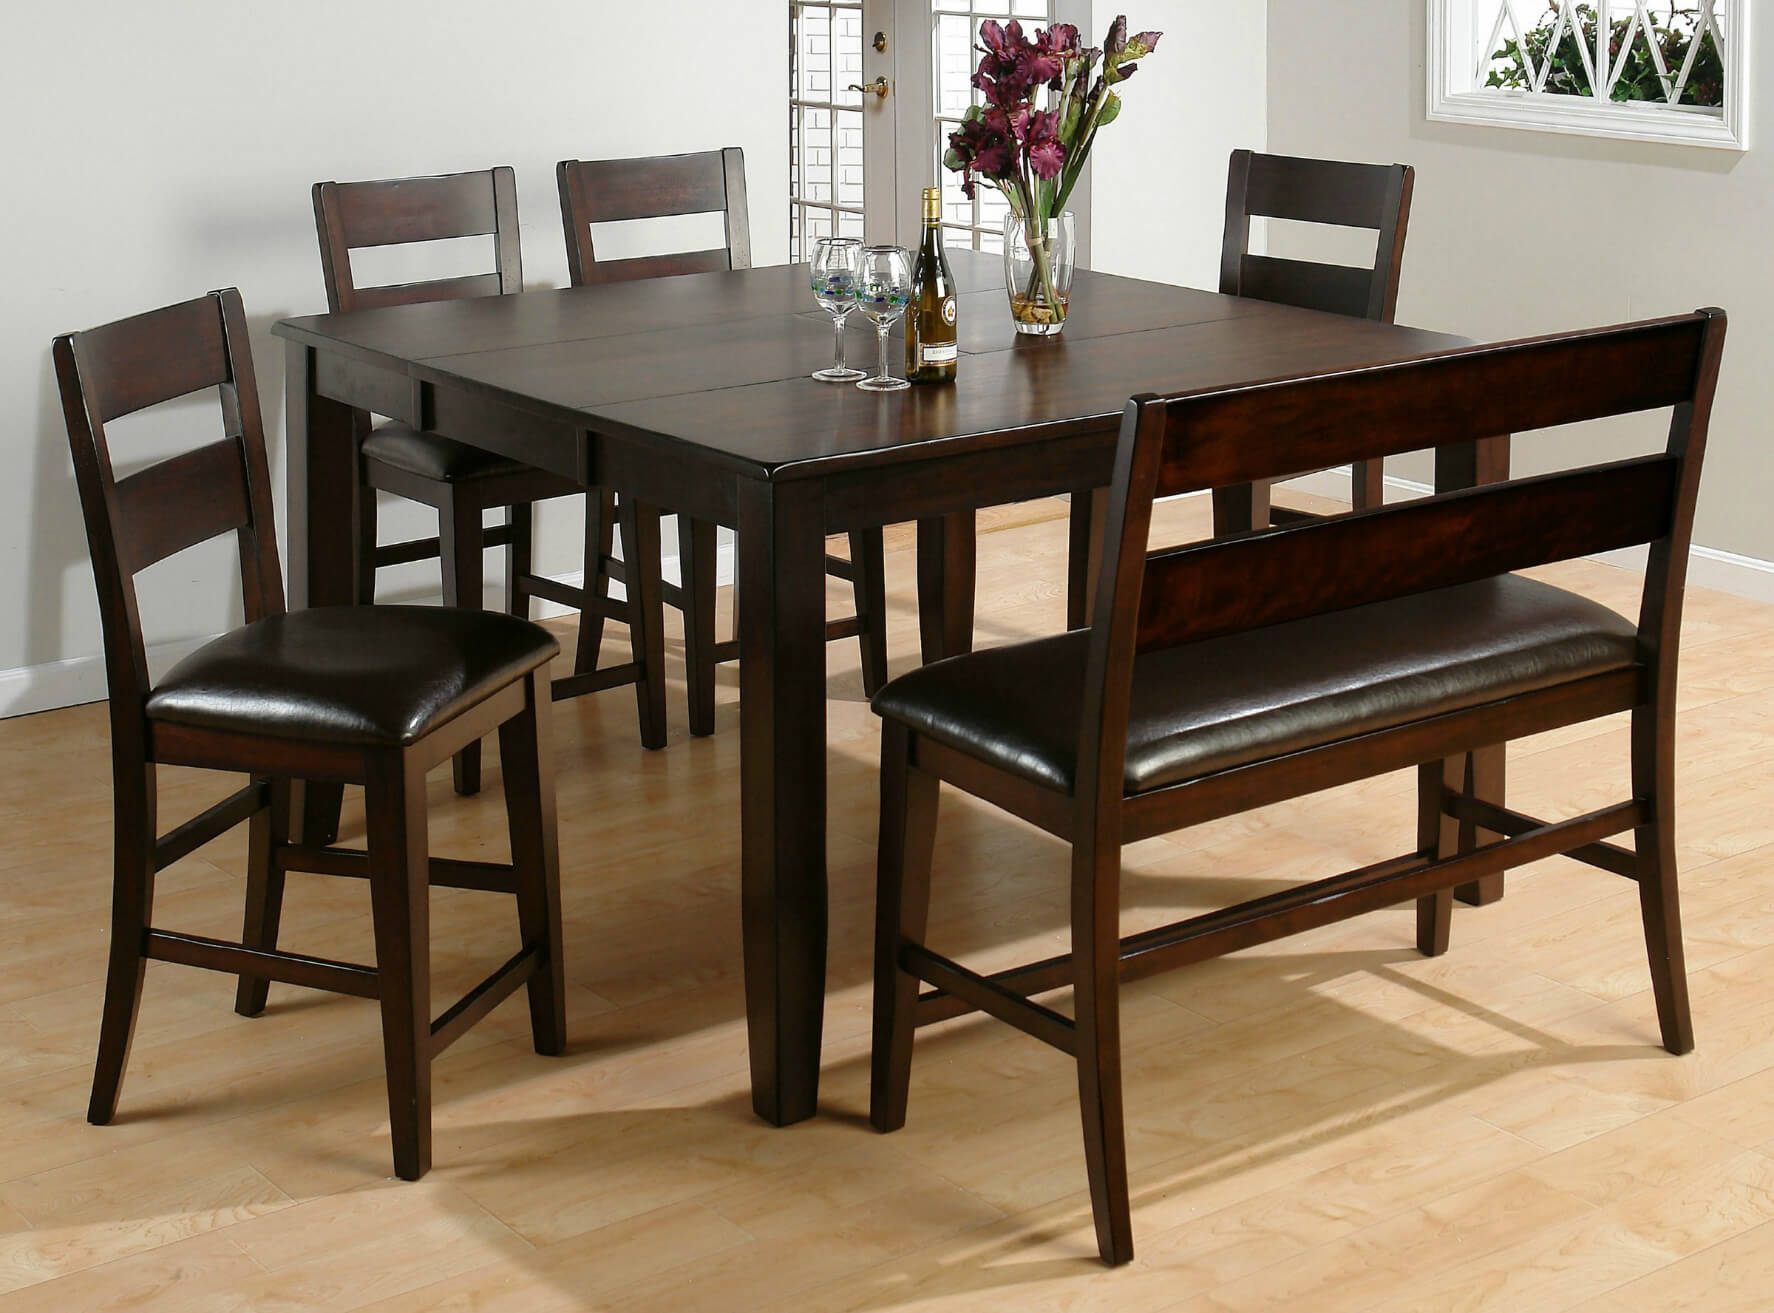 dining room sets bench seating kitchen table with benches Here s a counter height square dining room table with bench Moreover the bench includes